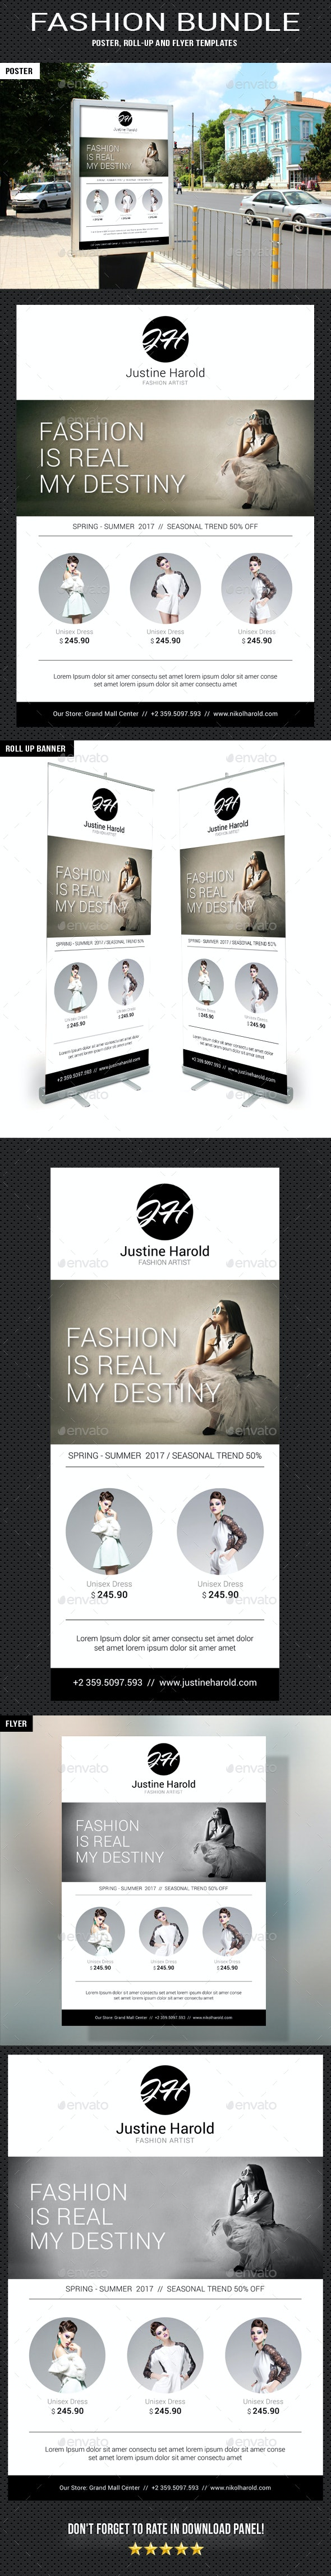 3 Fashion Poster Flyer Banner Bundle - Signage Print Templates